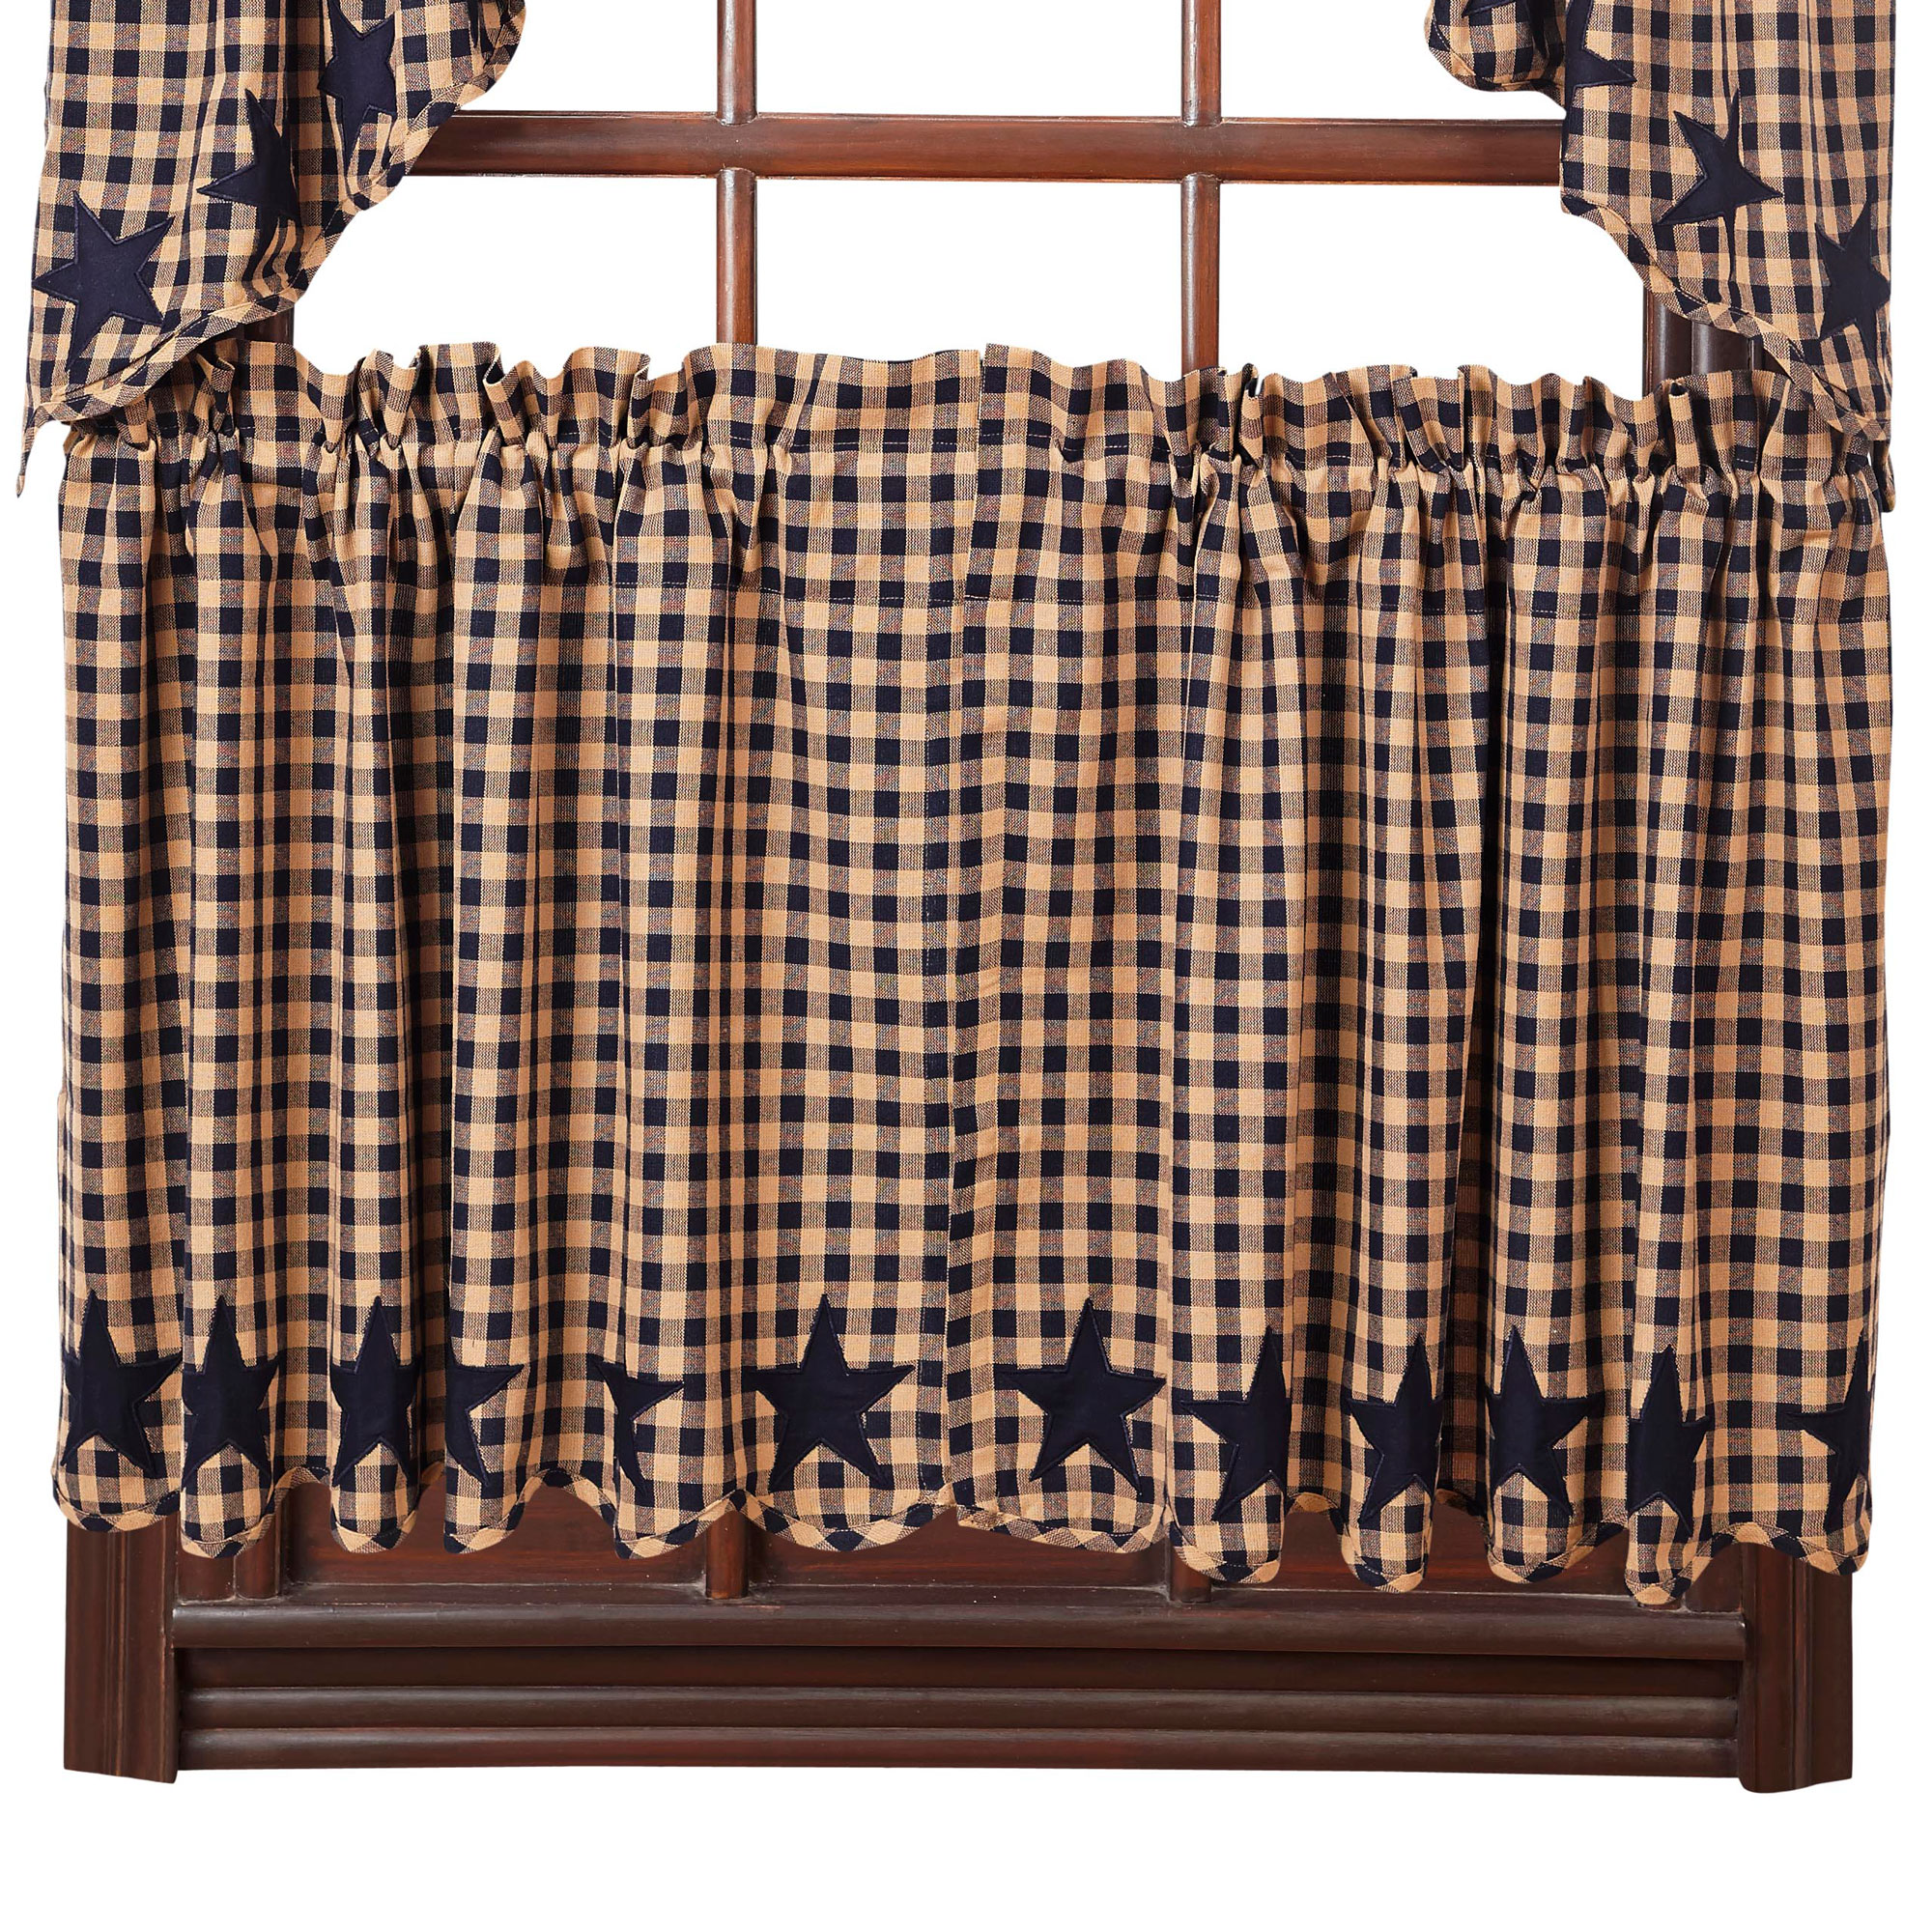 Star And Check Scalloped Country Curtain Tiers Navy Black Or Burgundy 24 Or 36